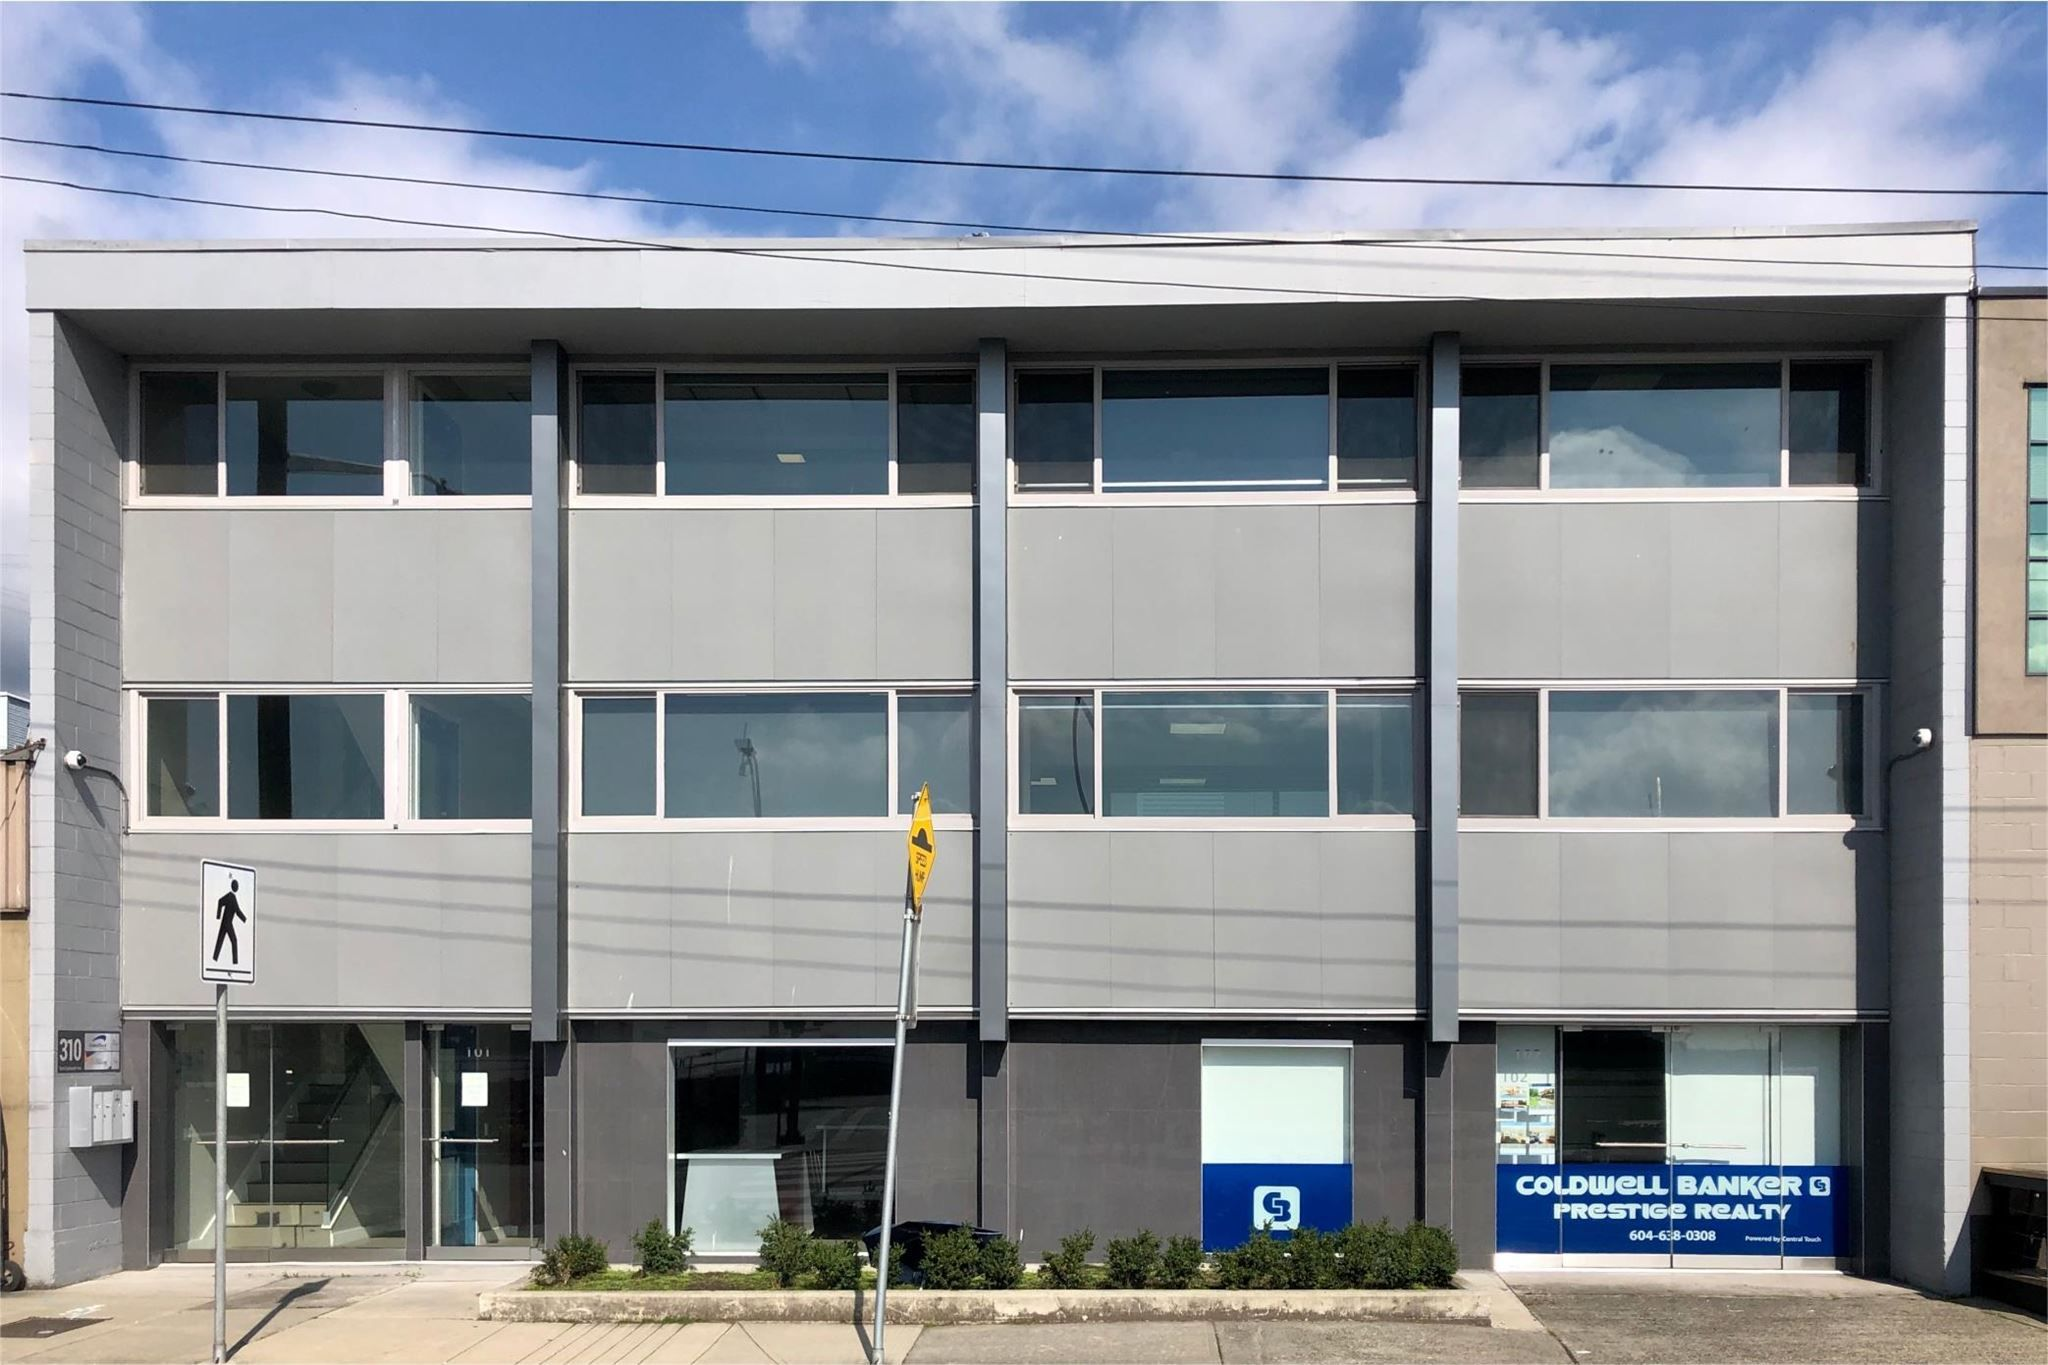 Main Photo: 310 E ESPLANADE Avenue in North Vancouver: Lower Lonsdale Industrial for sale : MLS®# C8039573